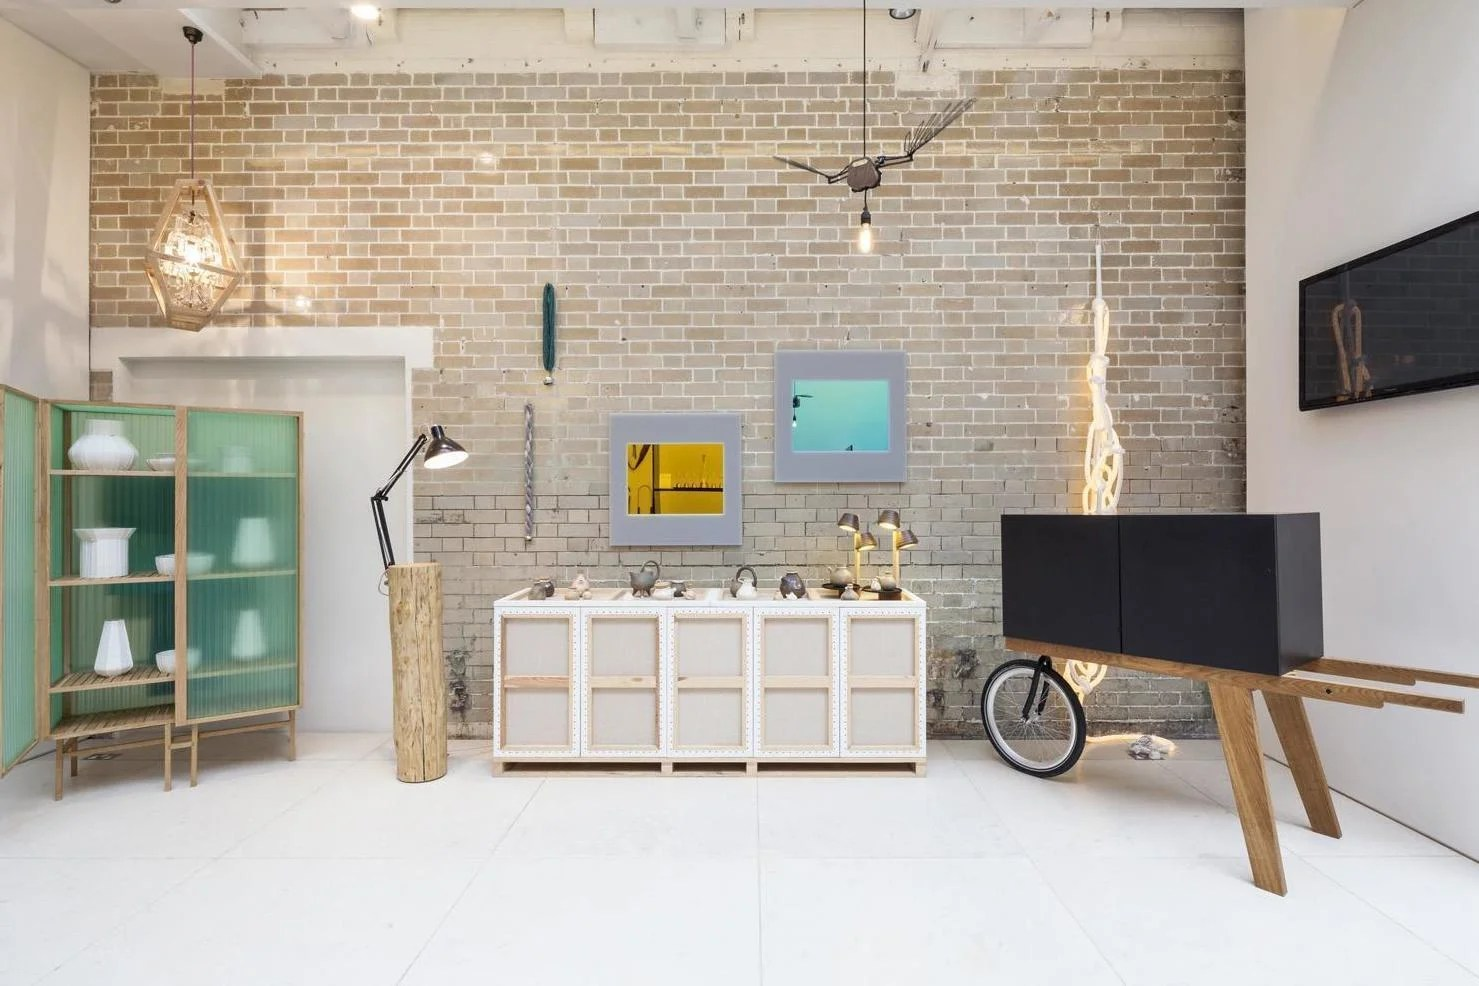 Best Interior Design Shops In London London Evening Standard Evening Standard